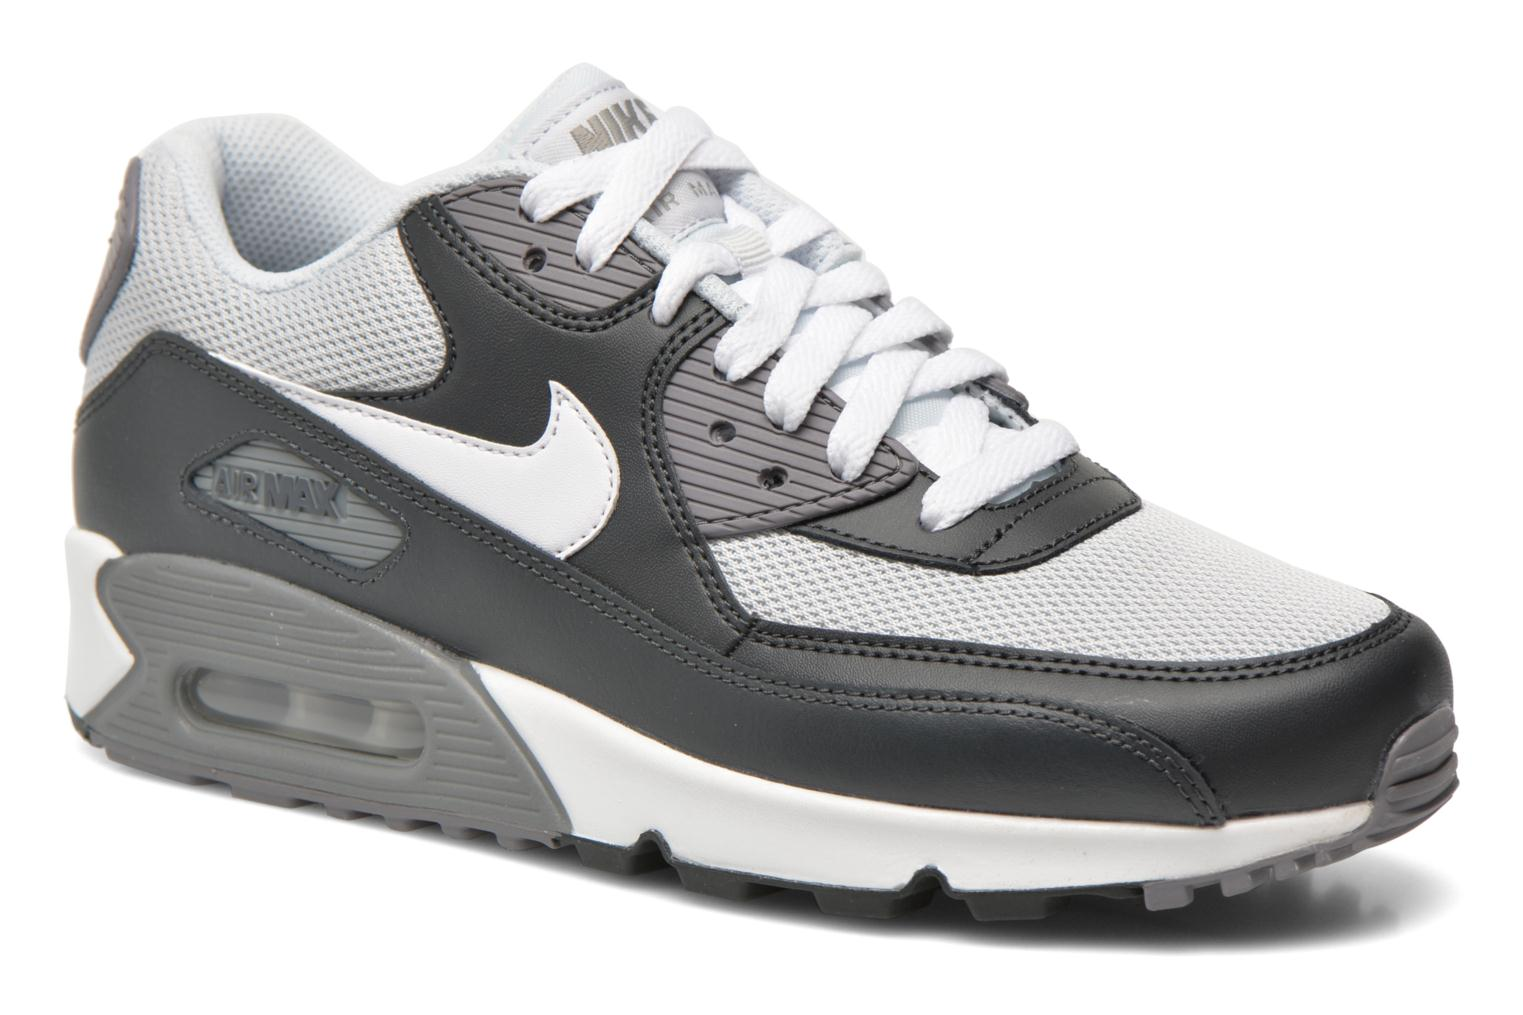 new style 9699f c9586 Baskets Nike Nike Air Max 90 Essential Gris vue détail paire